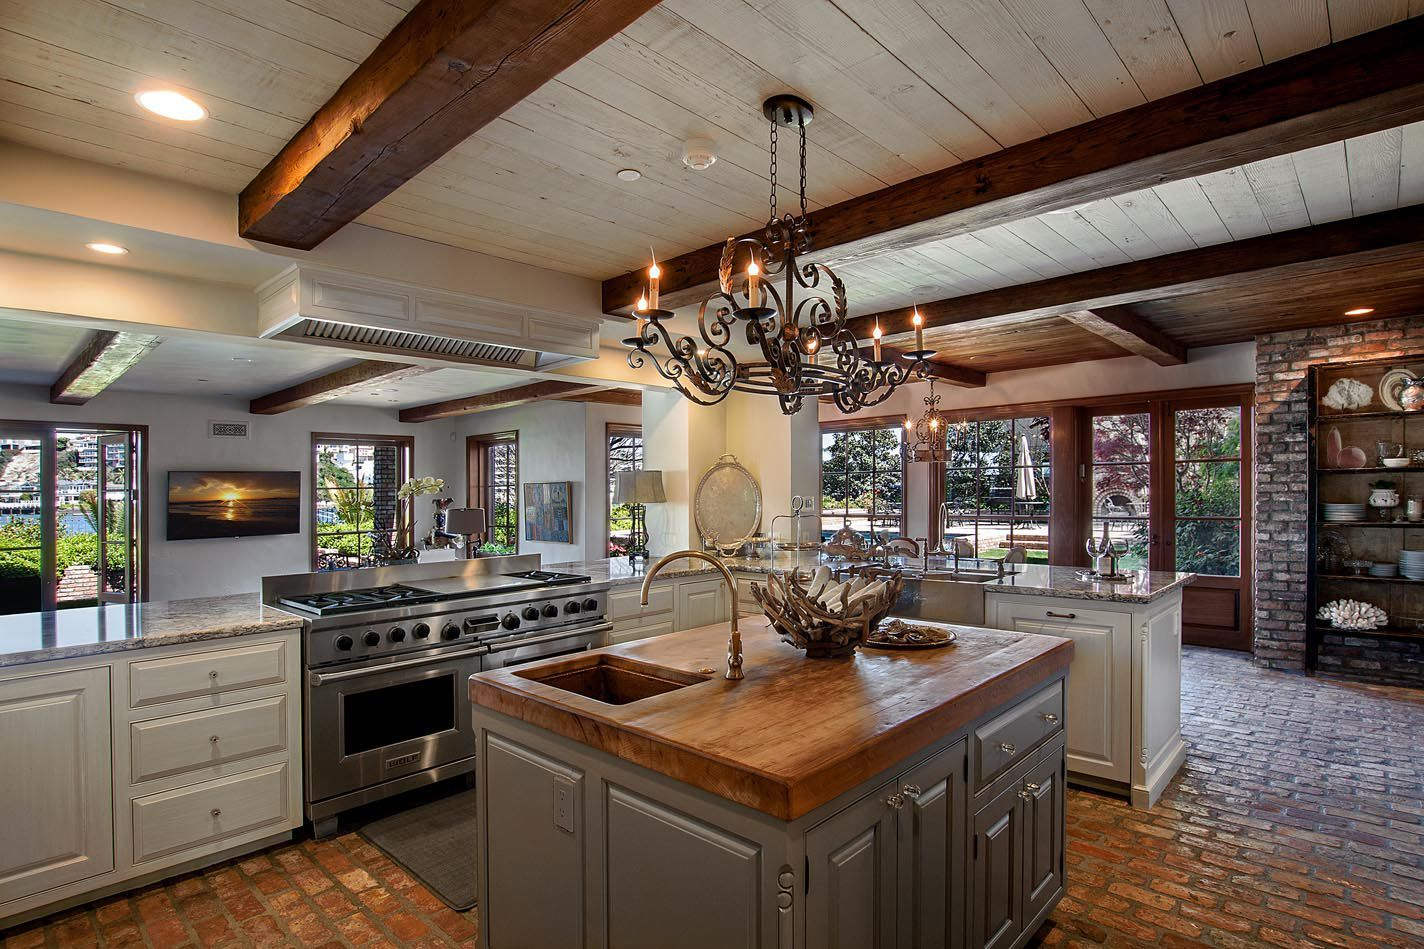 Beach House Kitchen - Rustic - Kitchen - Images by Beth ...